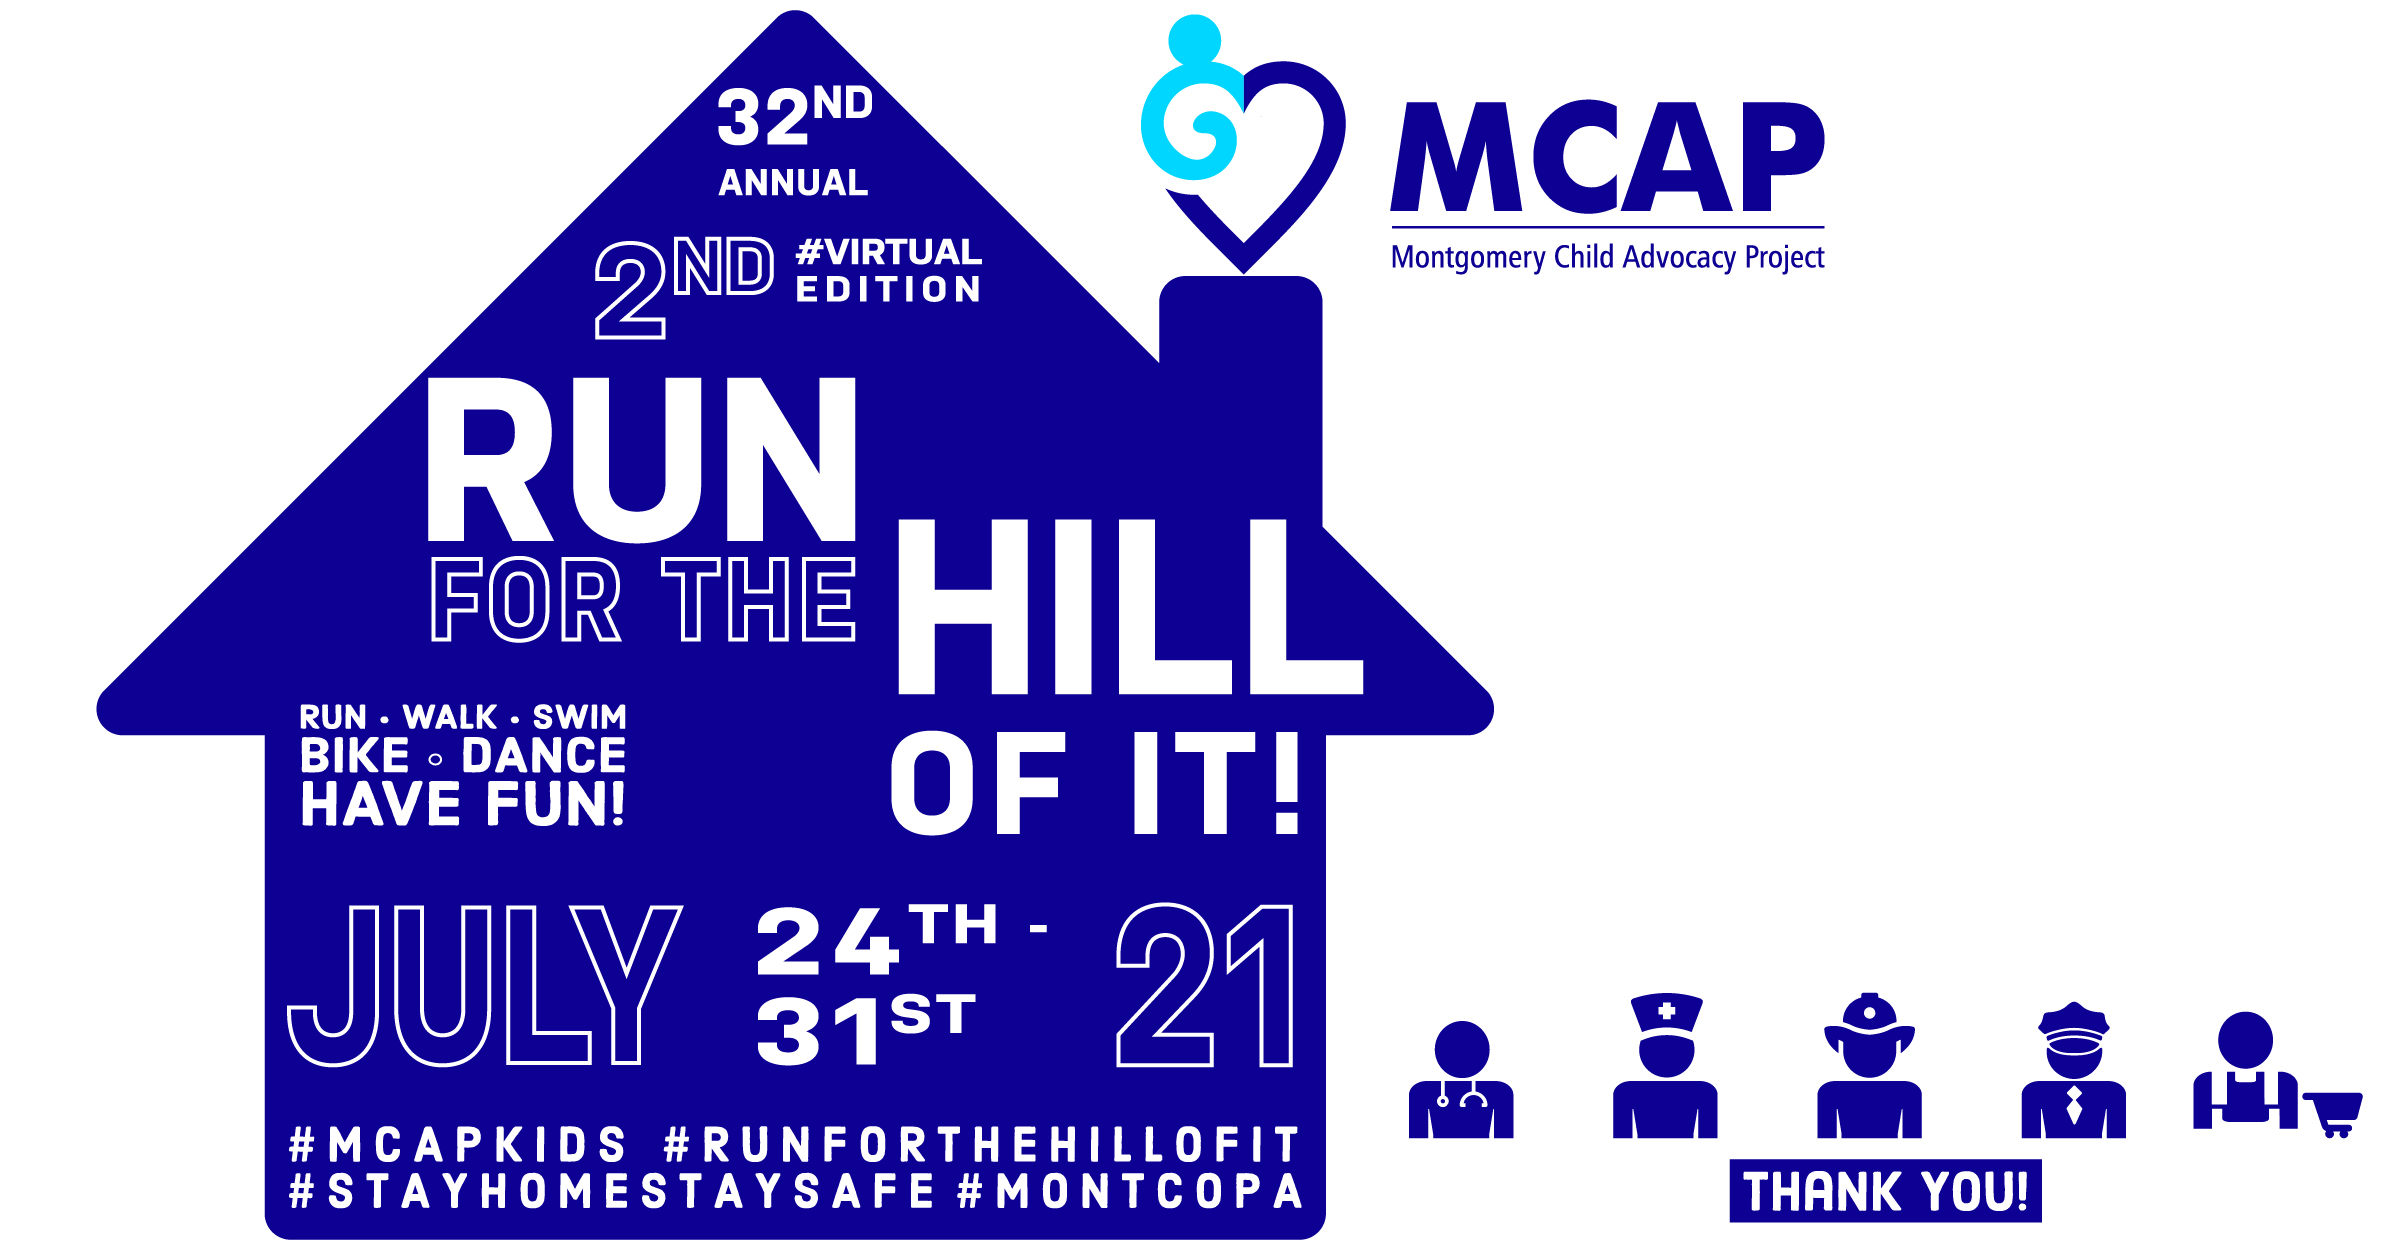 2nd VIRTUAL Run For The Hill Of It!